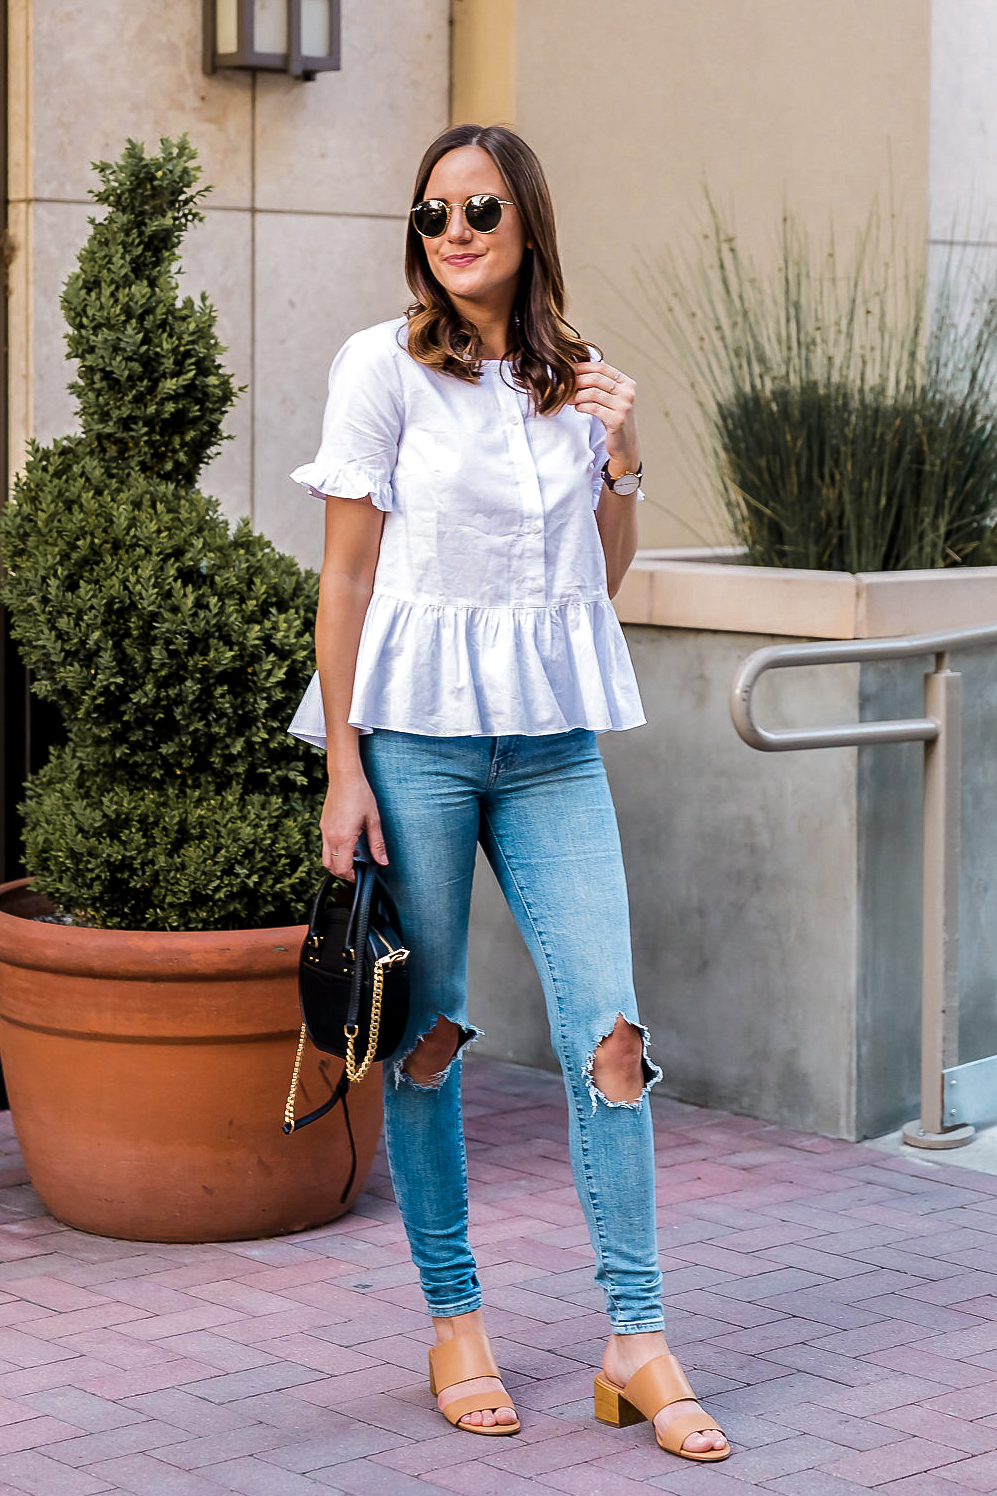 Shop the Look Below.  Madewell Top  |  Levi's Jeans  |  Madewell Sandals  |  Rebecca Minkoff Bag  |  Ray-Ban Sunglasses  |  Gorjana Rings